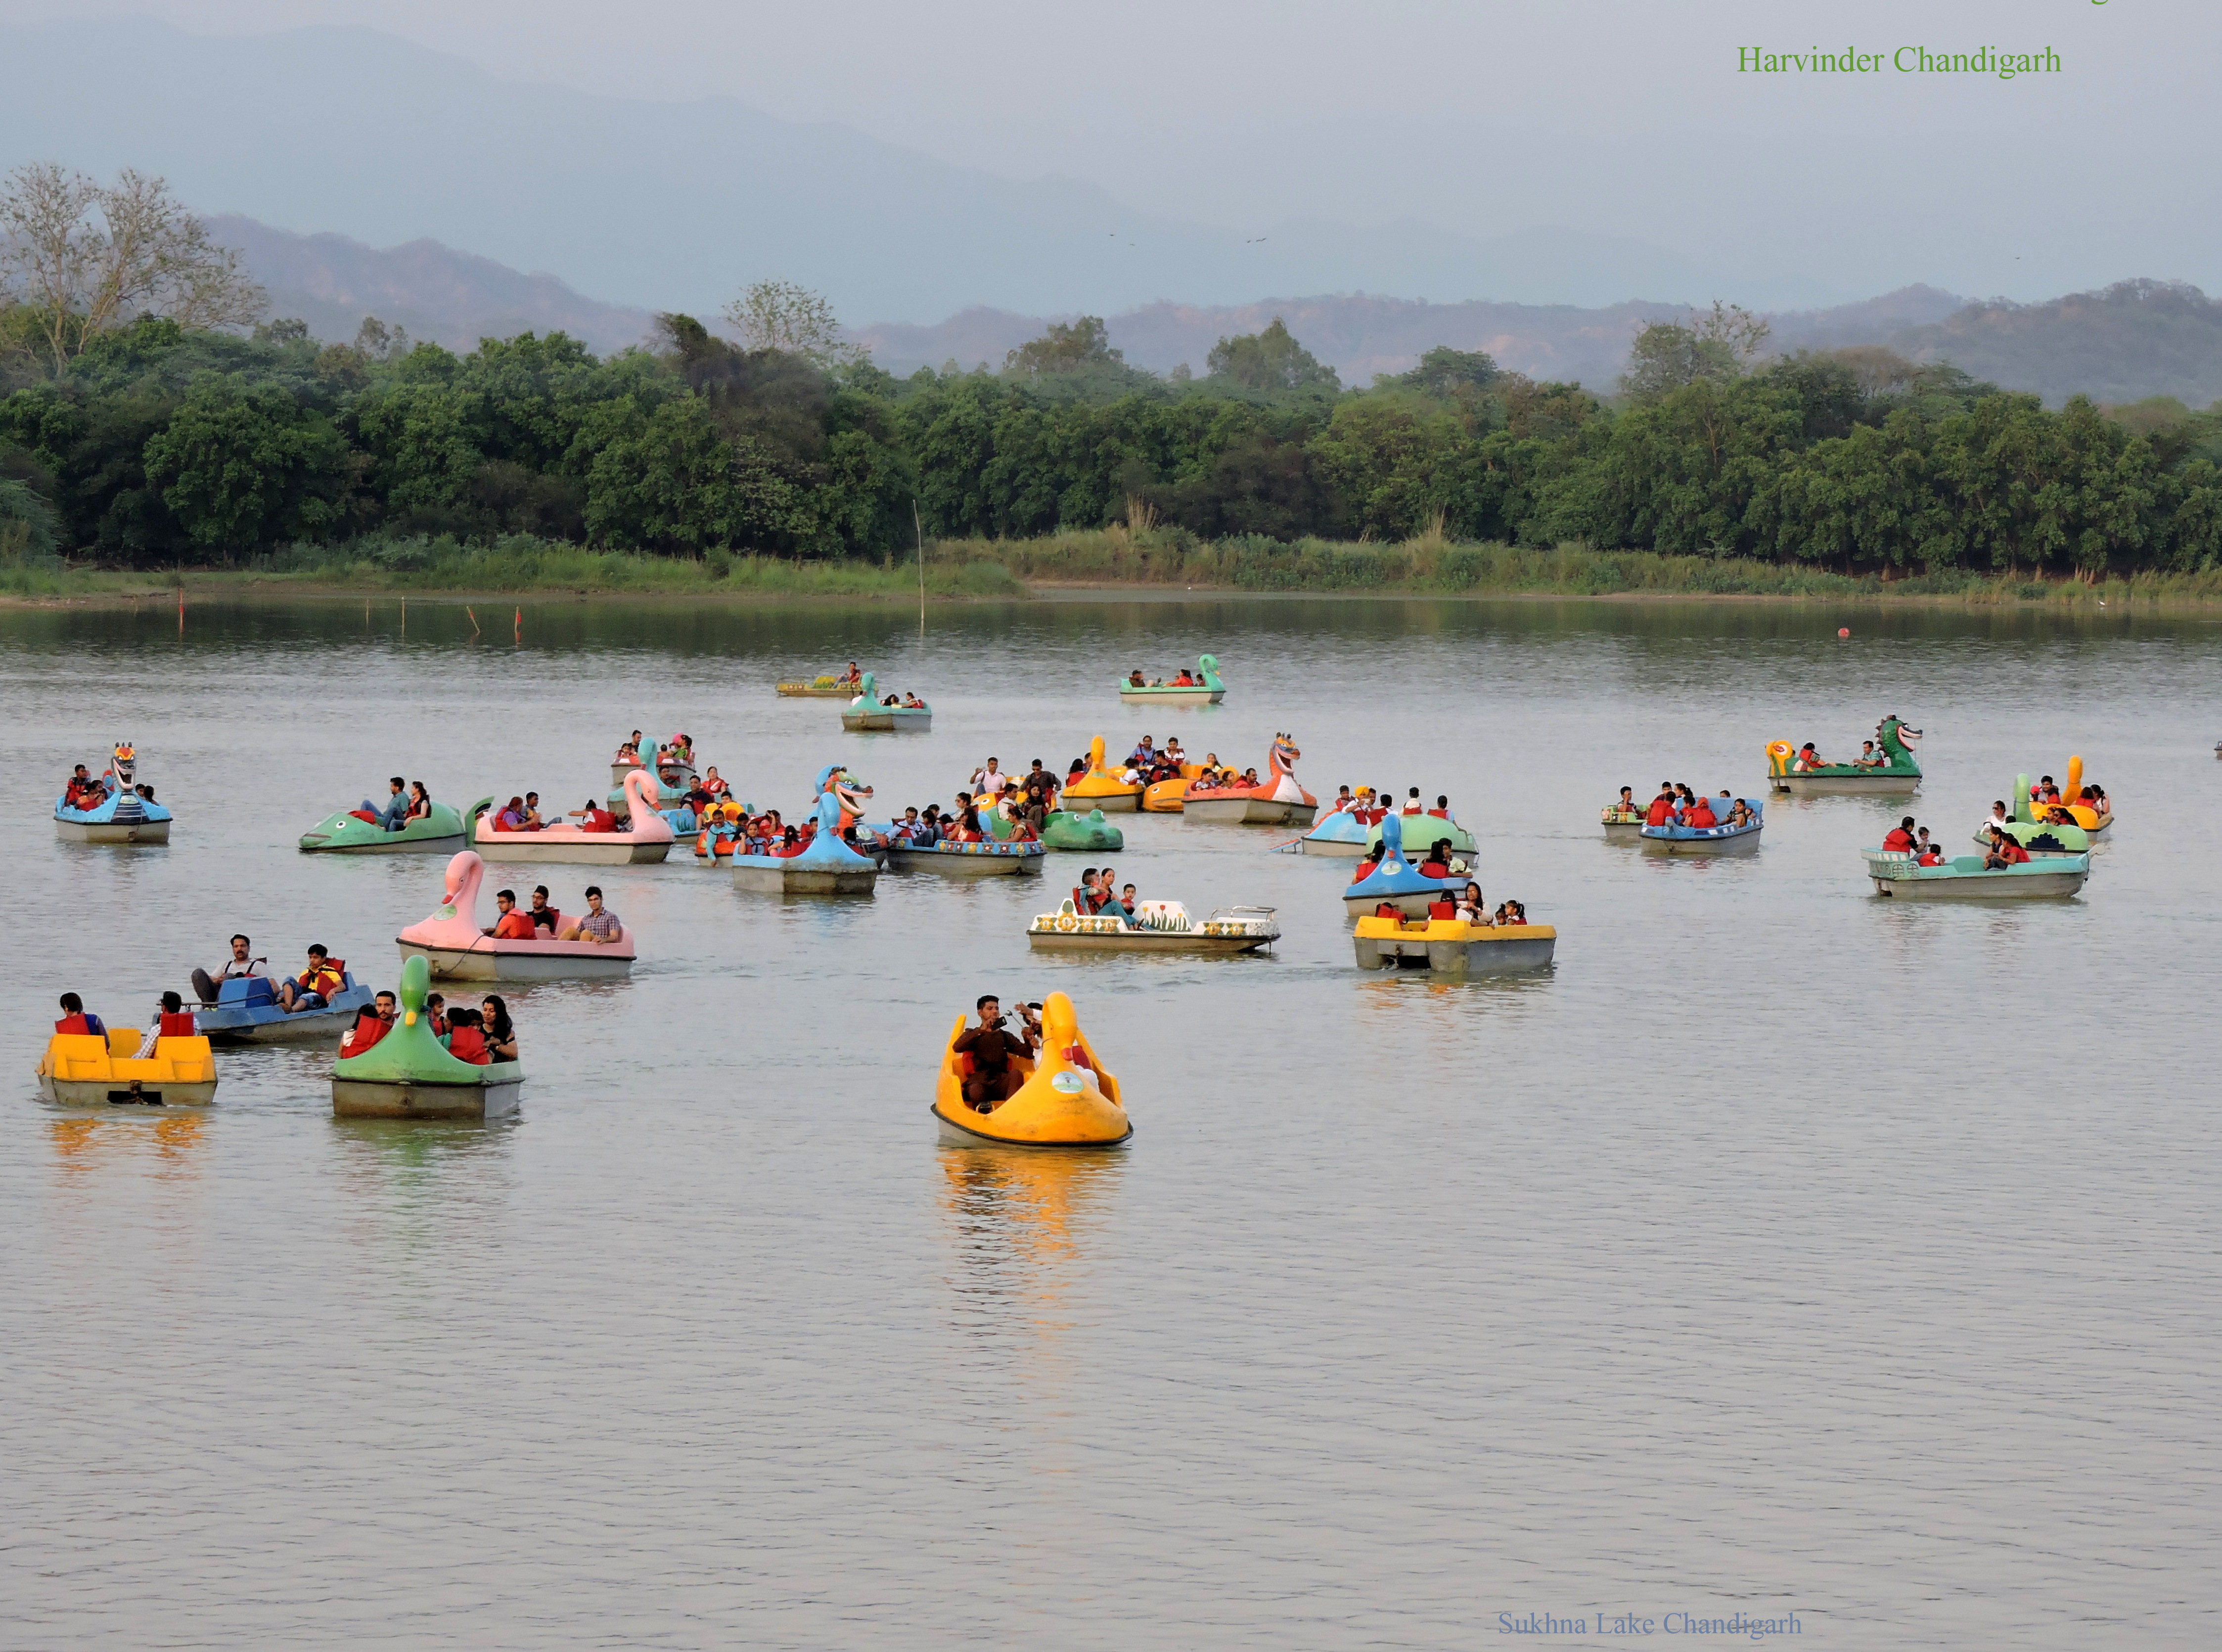 essay on sukhna lake chandigarh Chandigarh is the name of my city and it is known as the city beautiful  the lake  about which i am going to speak is known as sukhna lake.